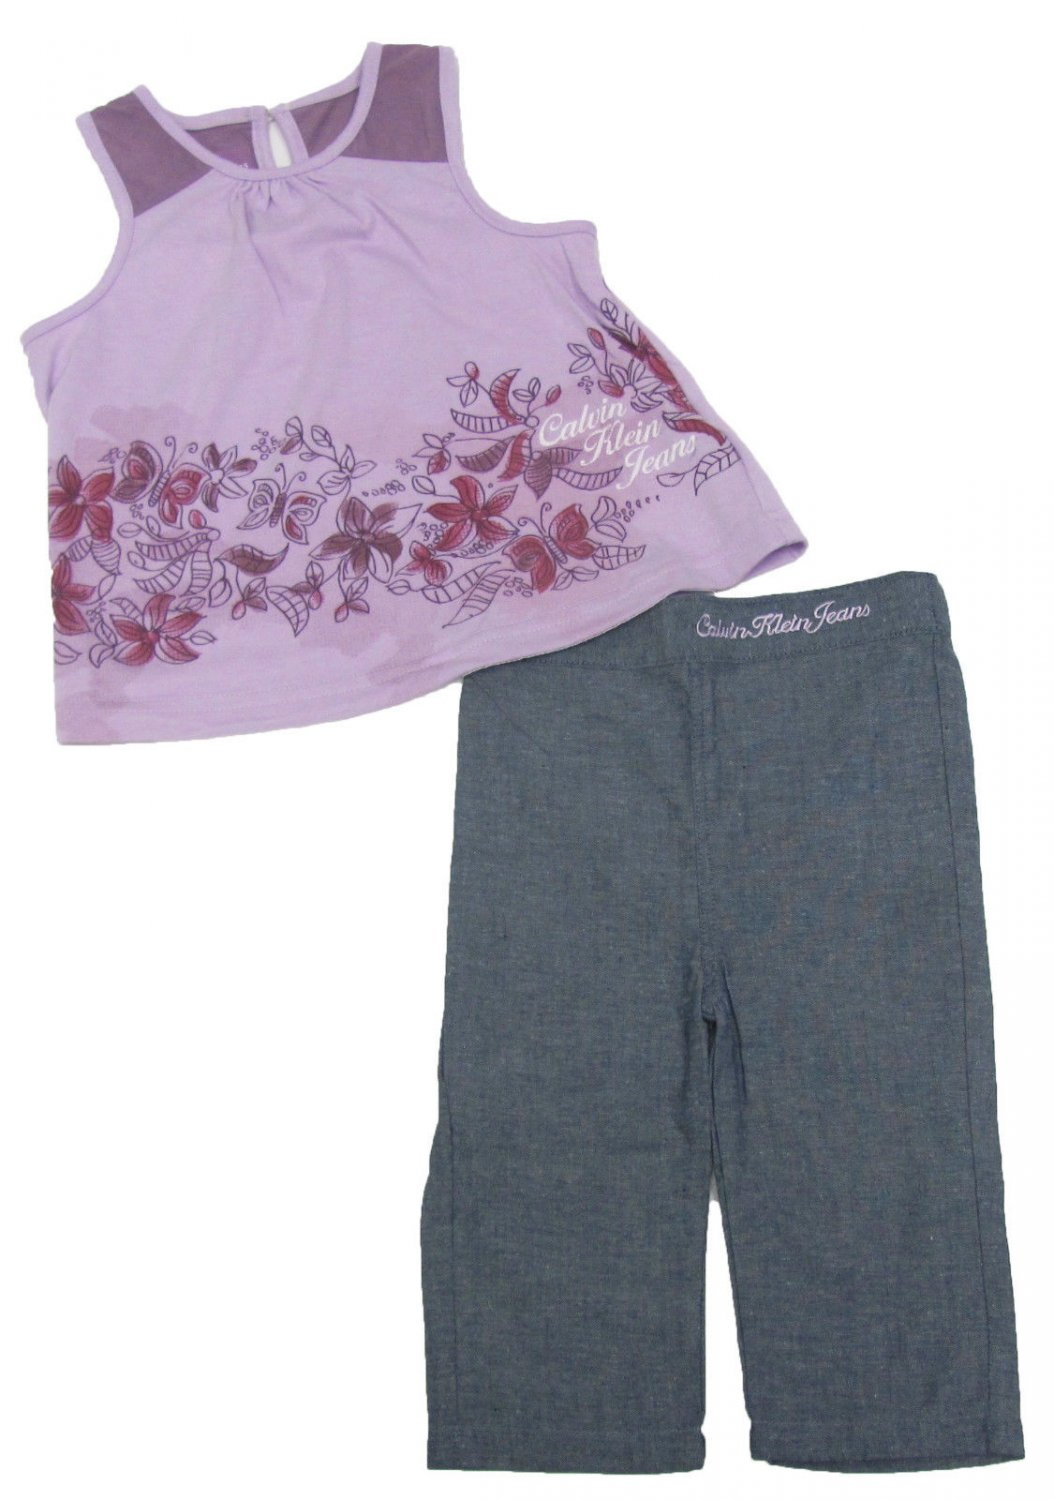 Calvin Klein Jeans 2T Girls 2-Piece Set Purple Tank Top Shirt Dark Blue Chambray Pants